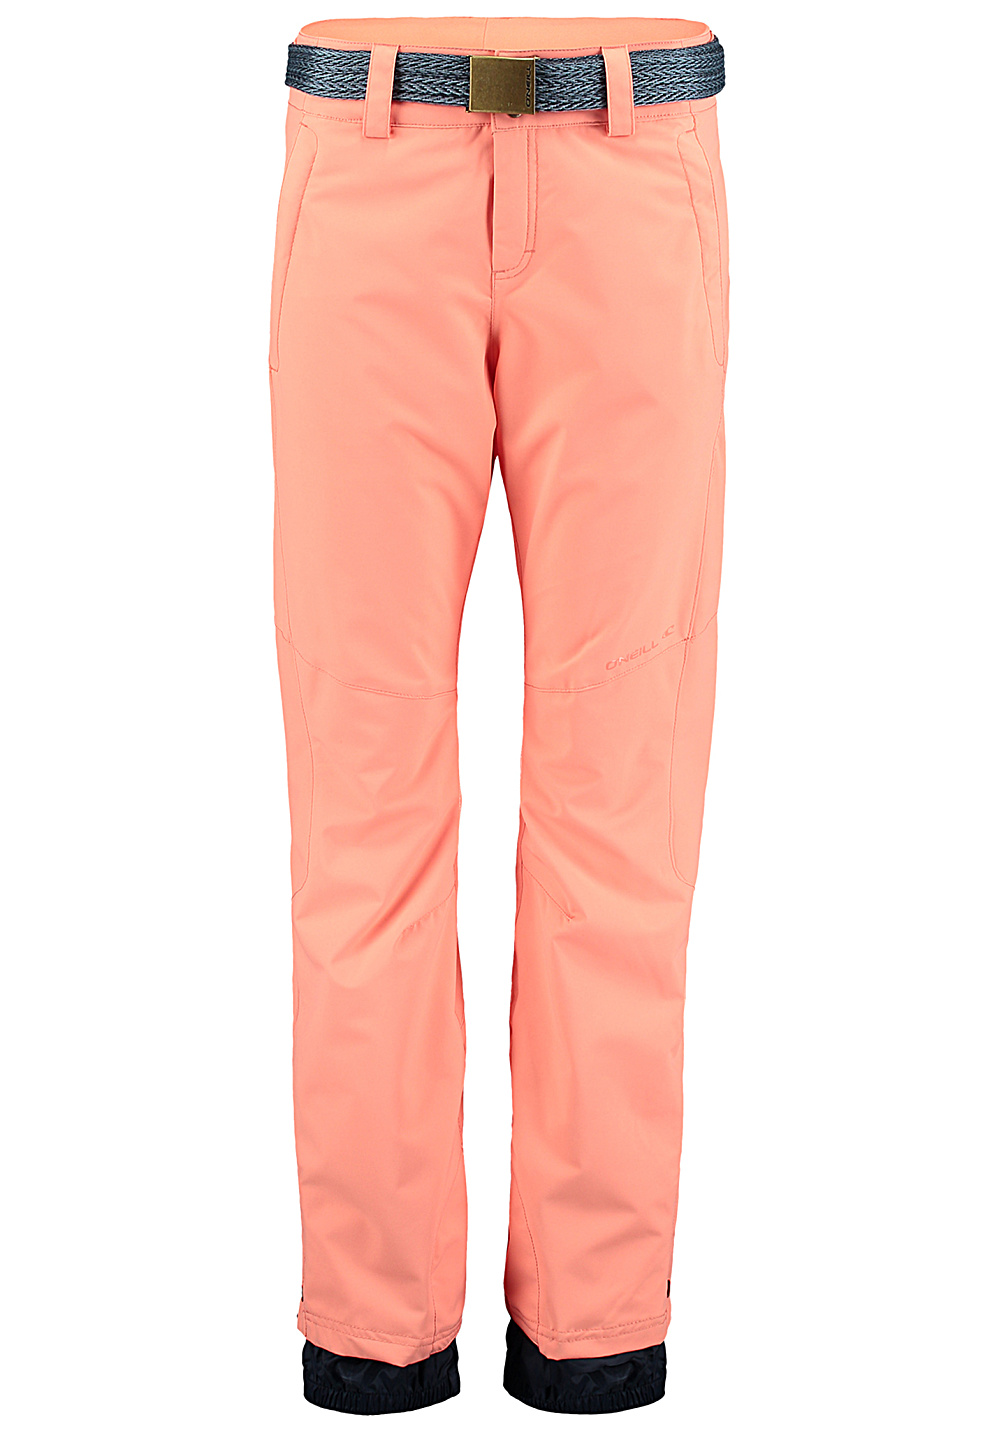 2ee494d9d05 O'Neill Star Slim Fit - Snowboard Pants for Women - Red